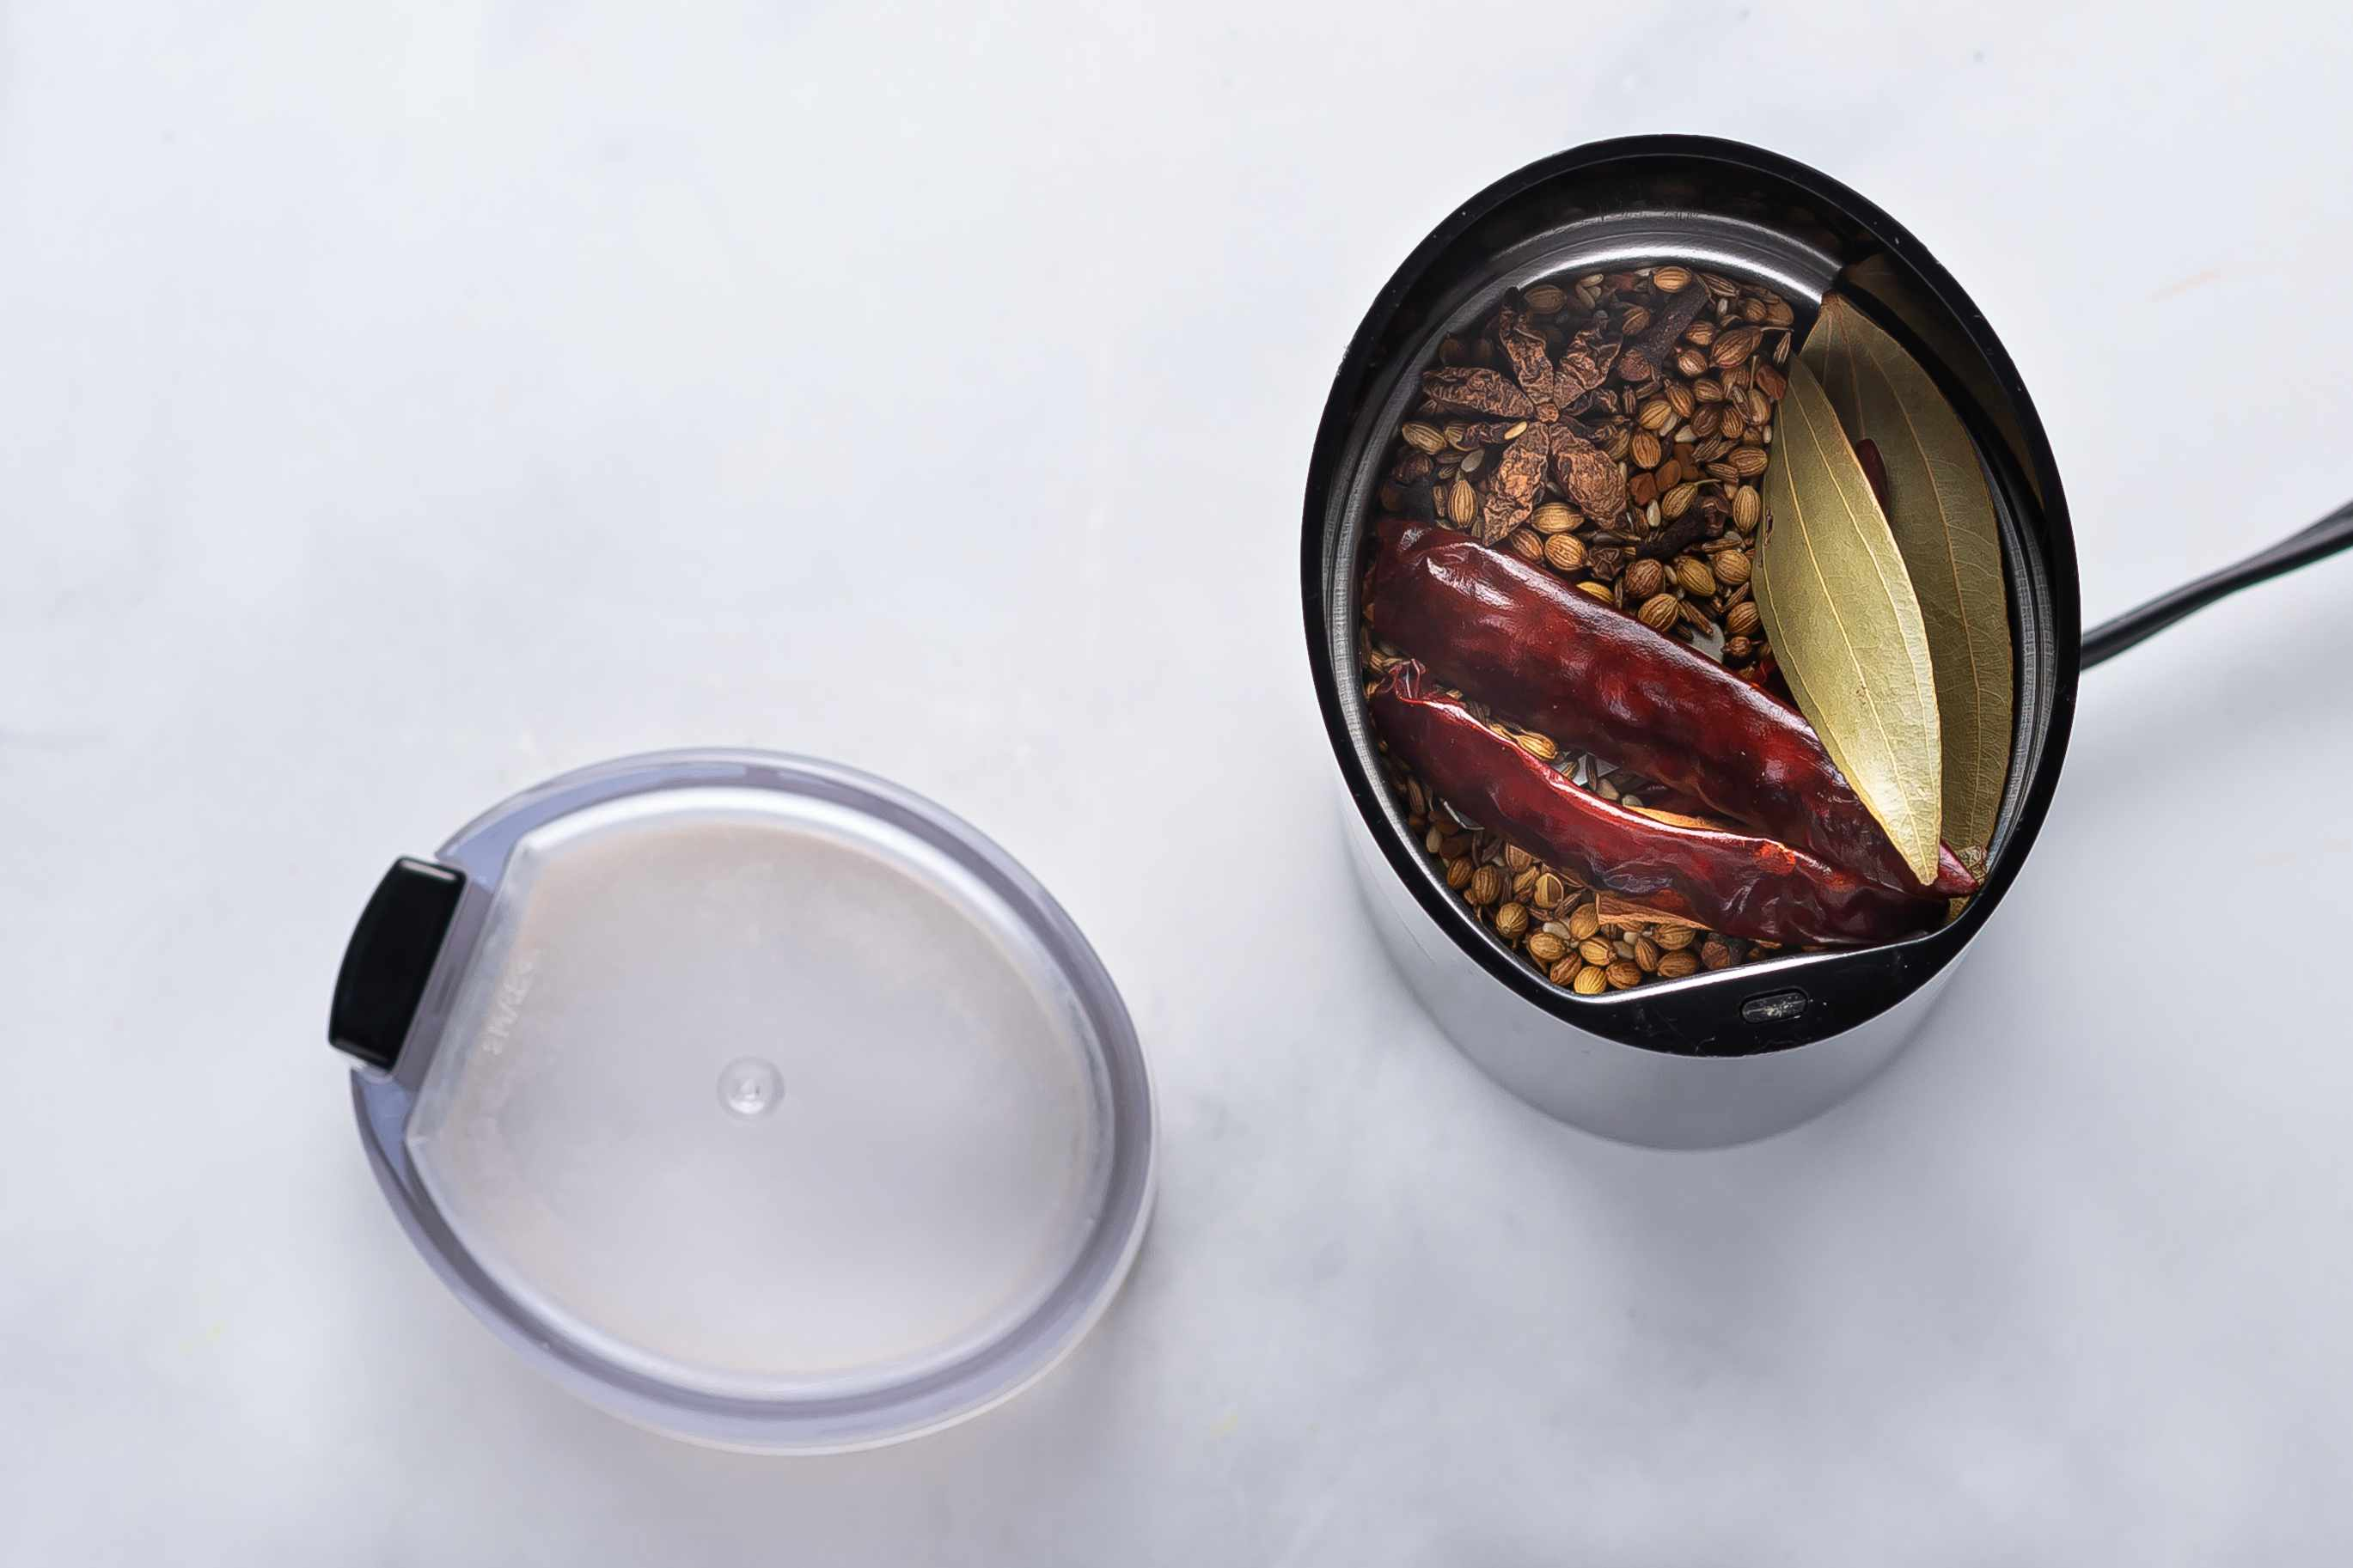 grind the spices in a spice grinder